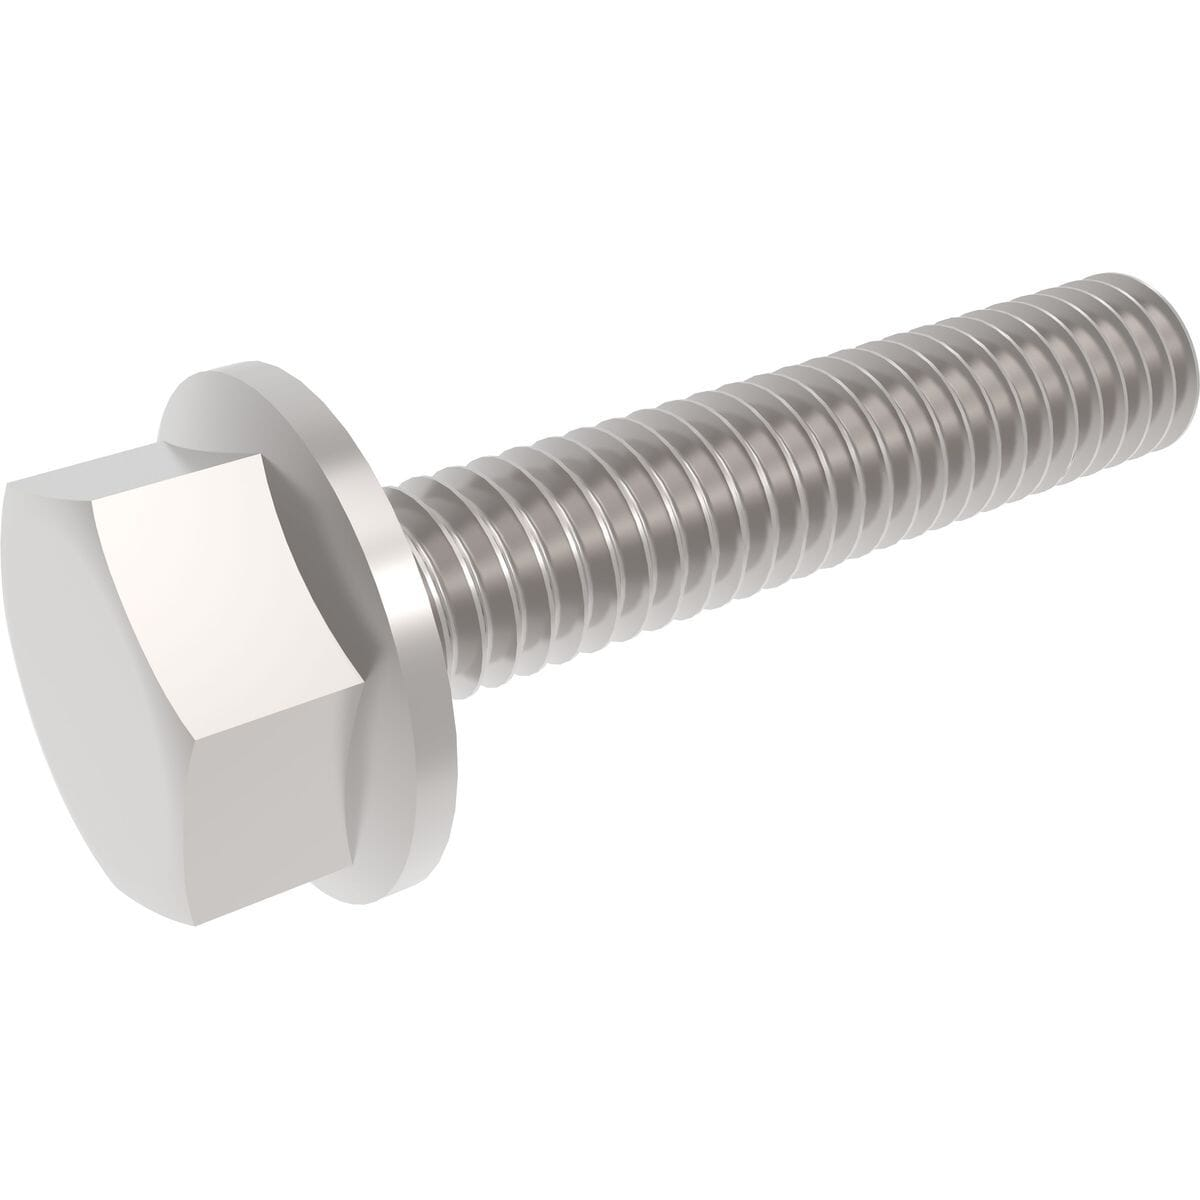 M10 x 20mm Flanged Hexagon Bolts (DIN 6921) - Stainless Steel (A2)